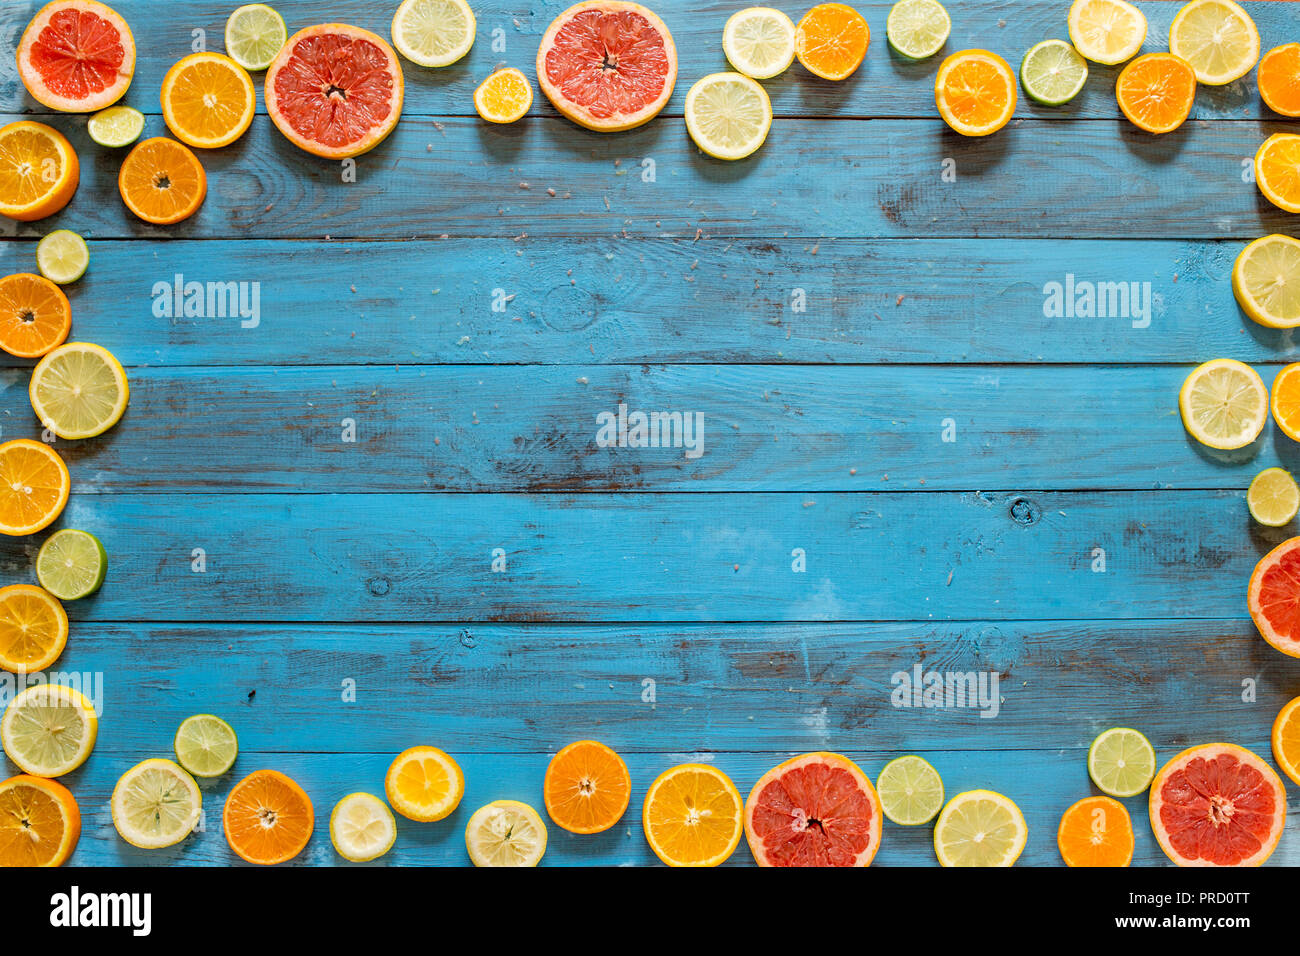 Frame made of citrus fruits slices on blue planks - Stock Image